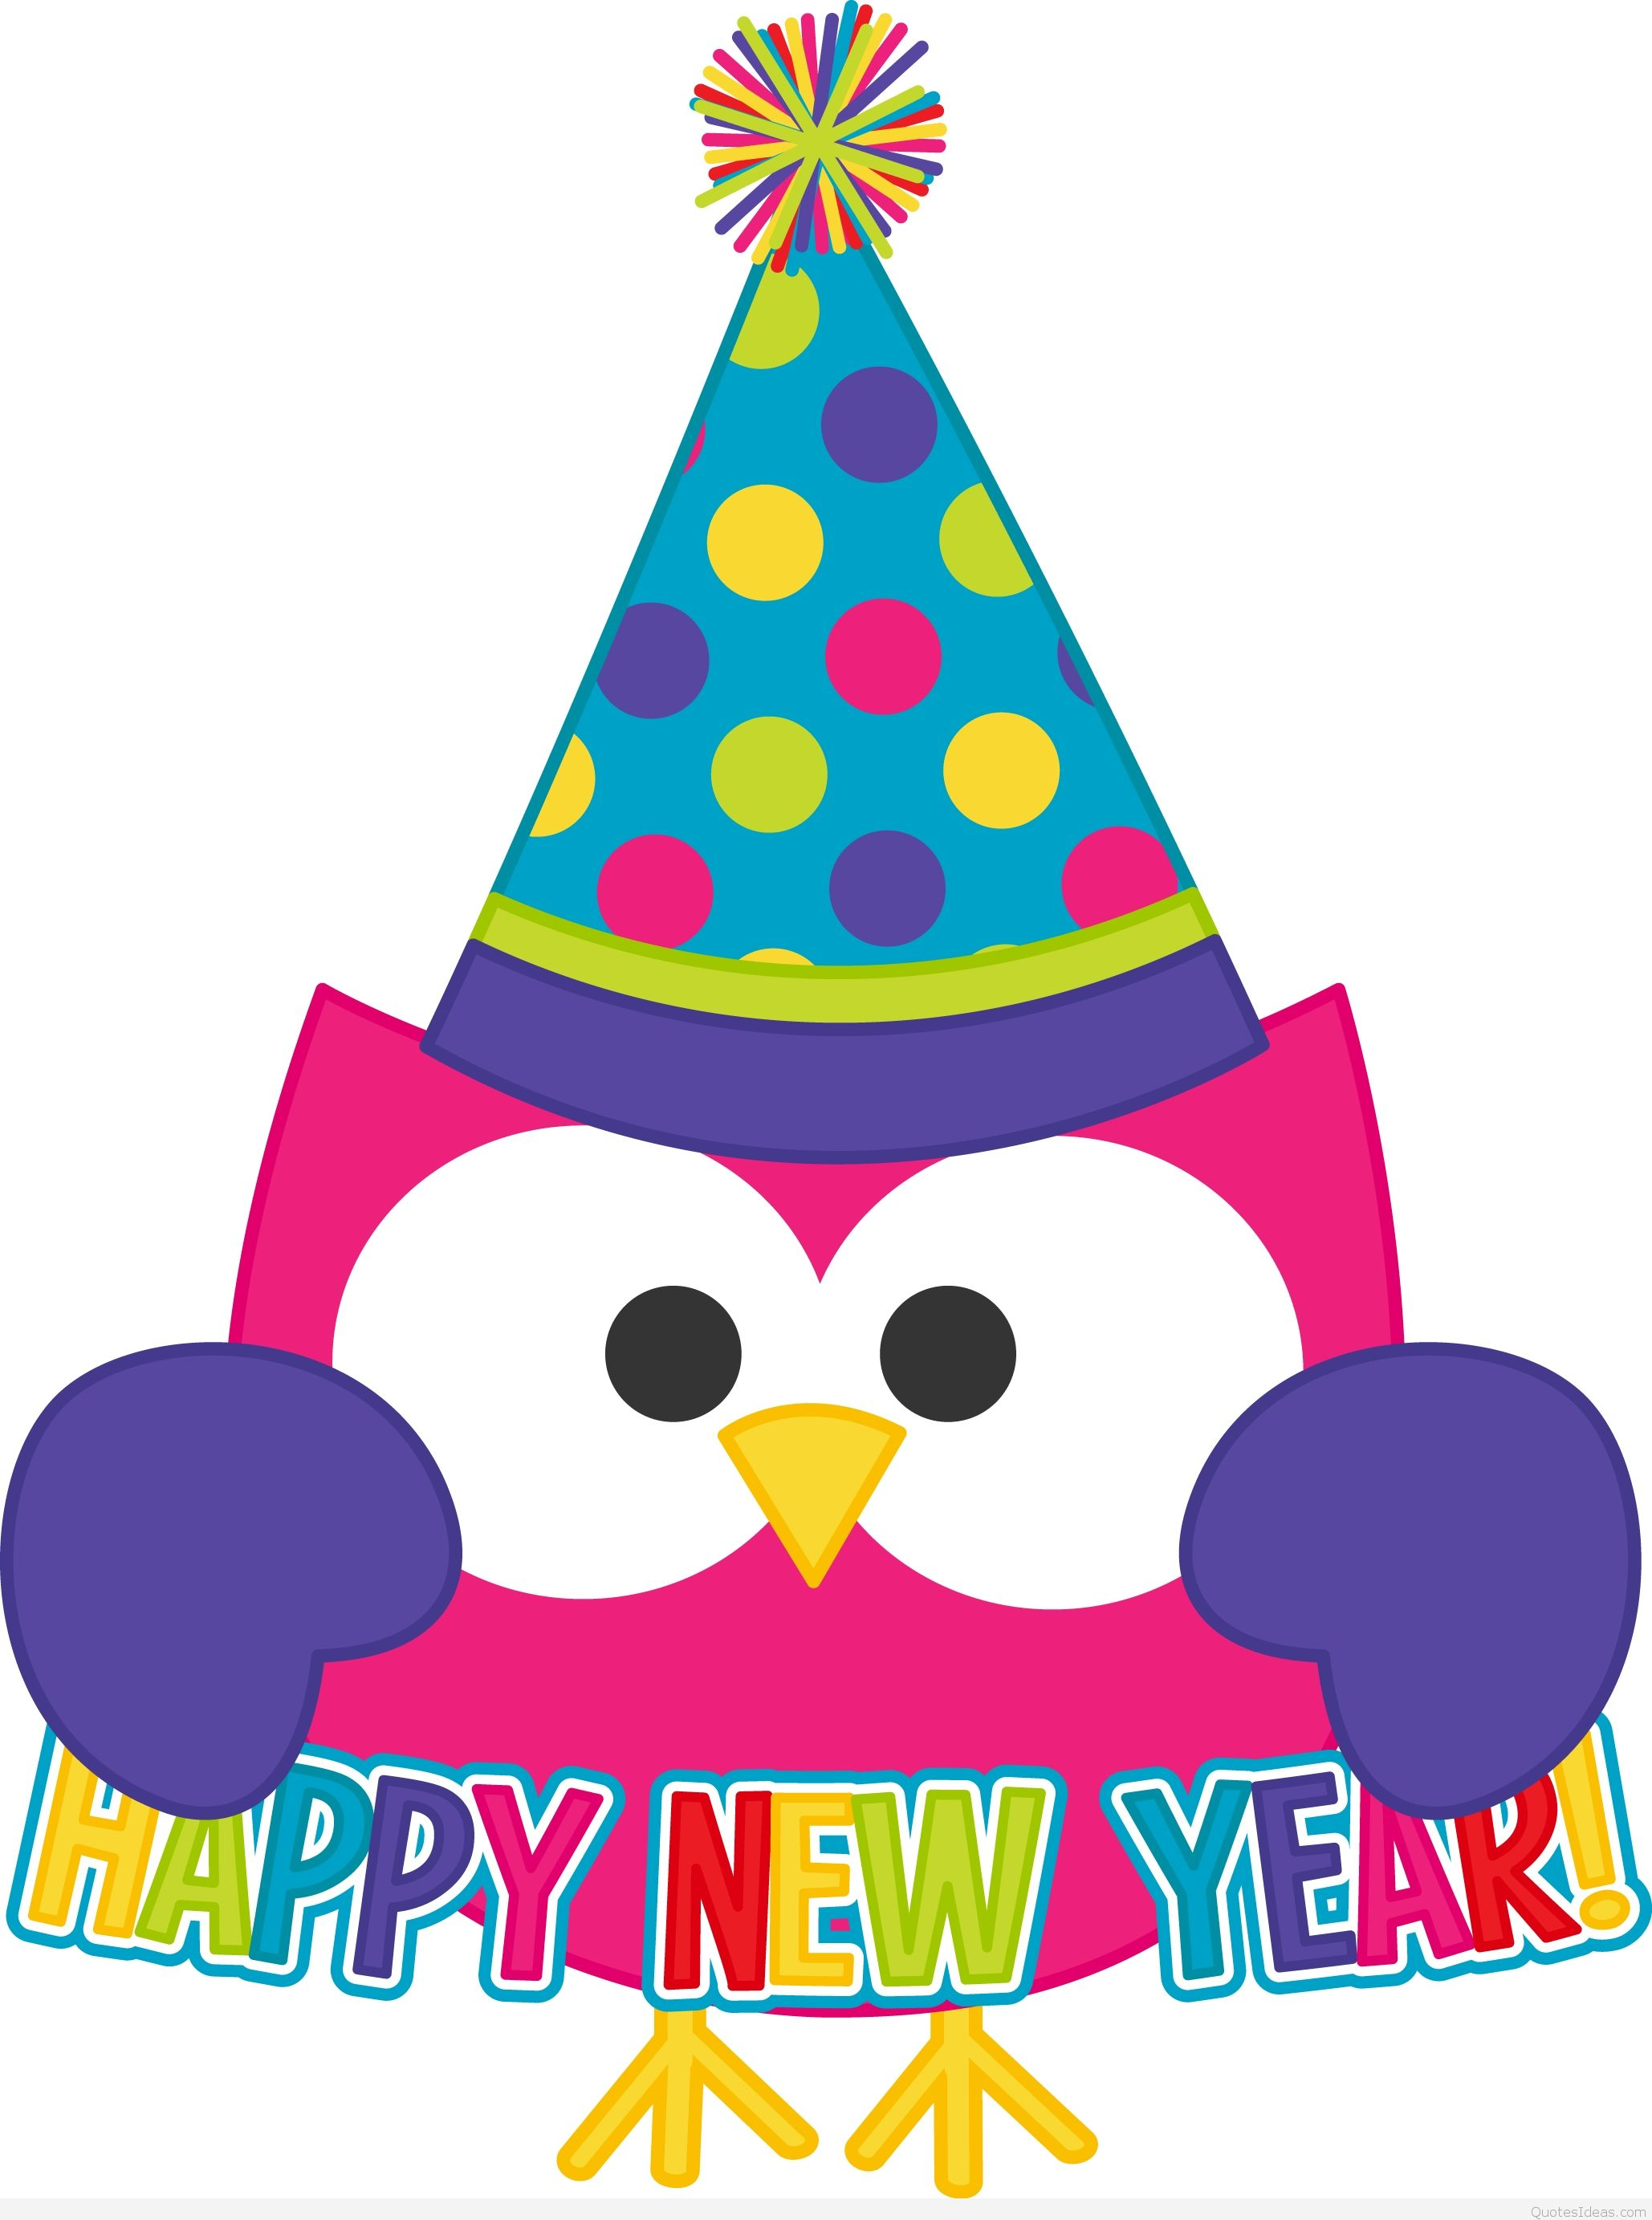 Happy new year clip art wallpapers   ClipartBarn 2058x2766